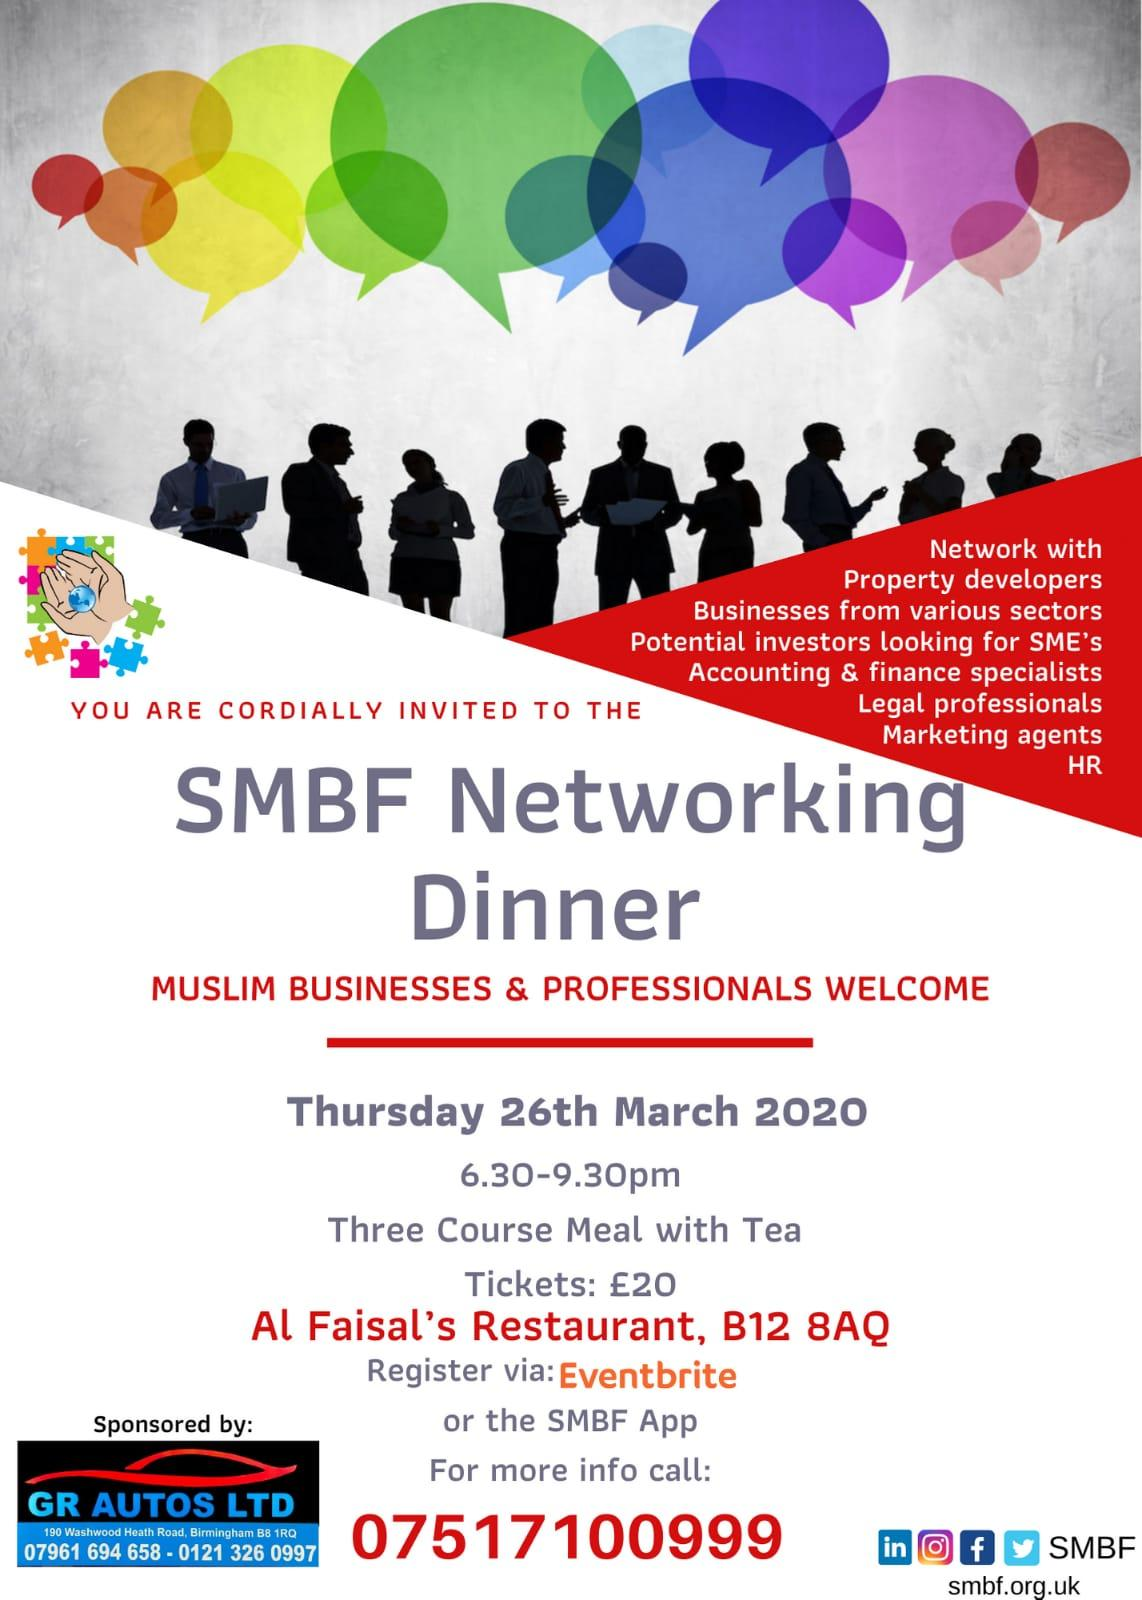 SMBF Networking Dinner